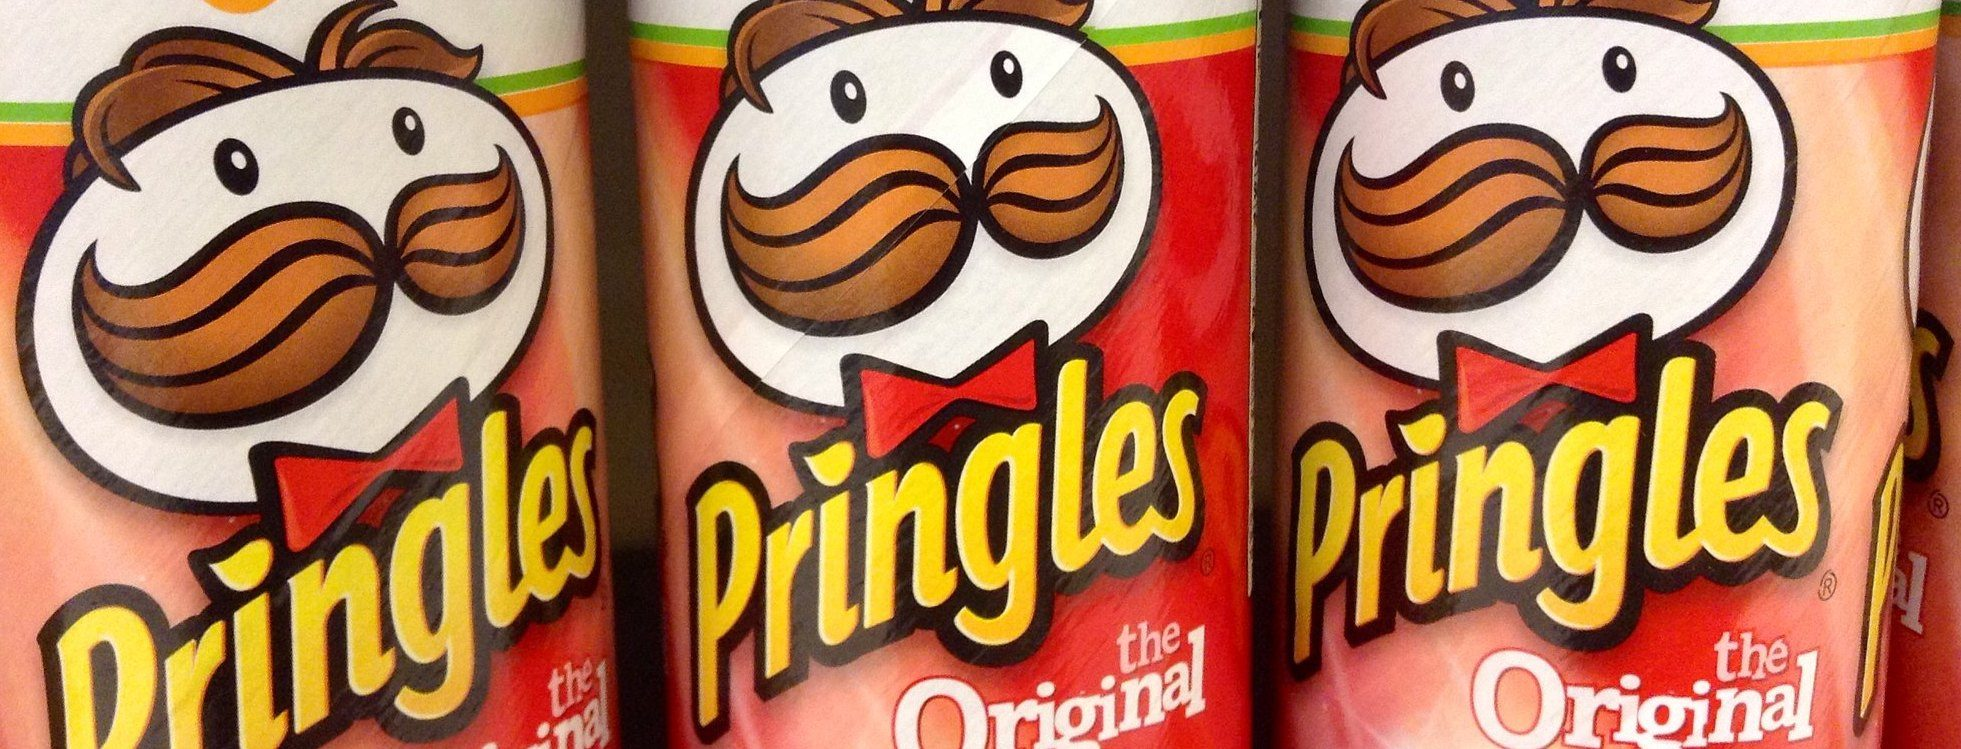 Pringles is releasing a new mystery flavor (and giving away $10,000)